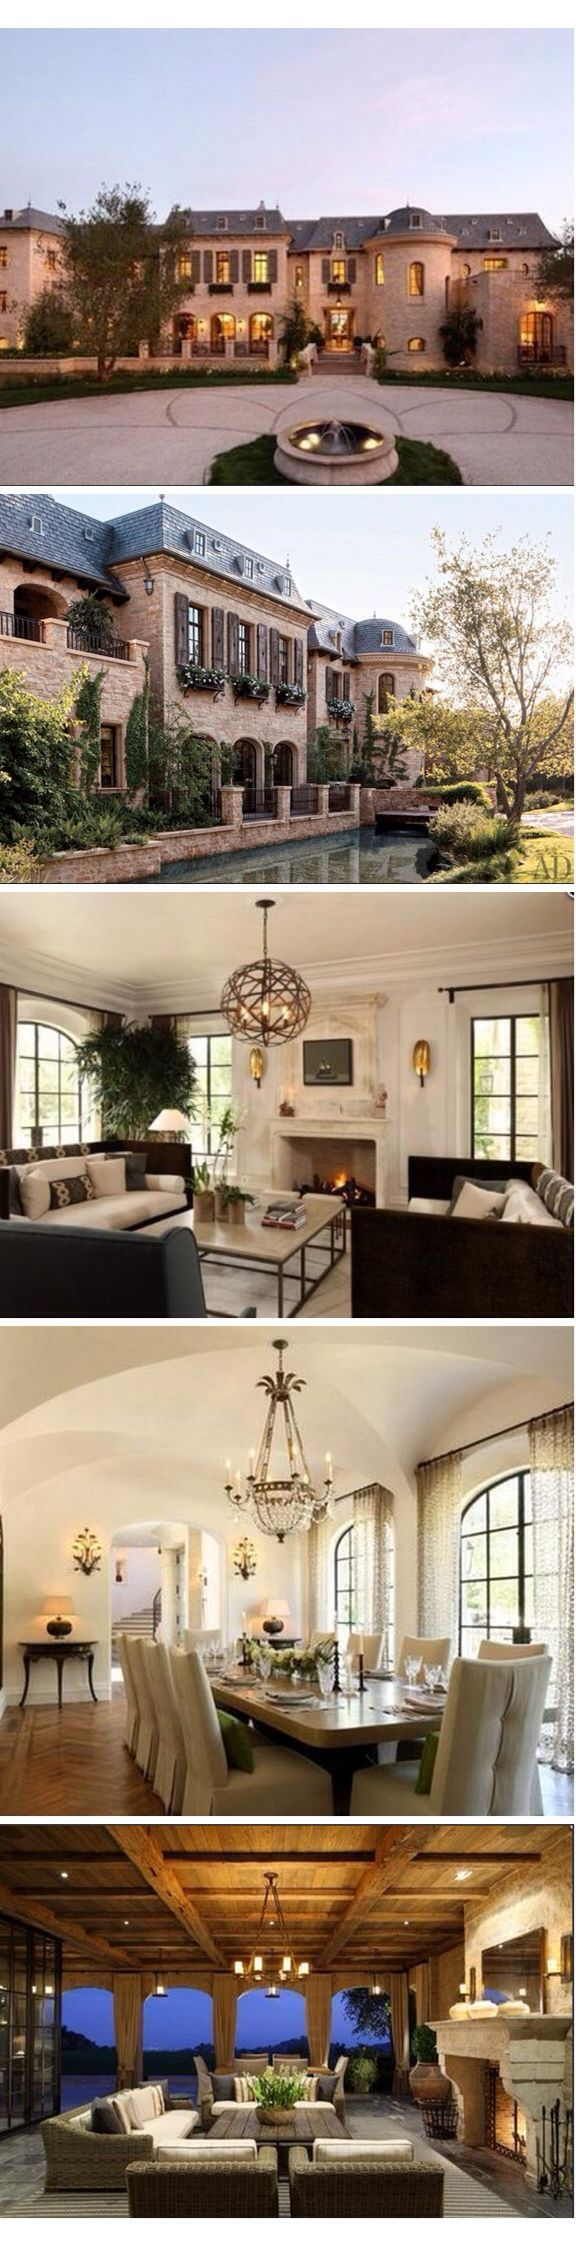 Gisele-bundchen-tom-brady-lists-their home- from the opulentlifestyle@LUXURYdotcom::